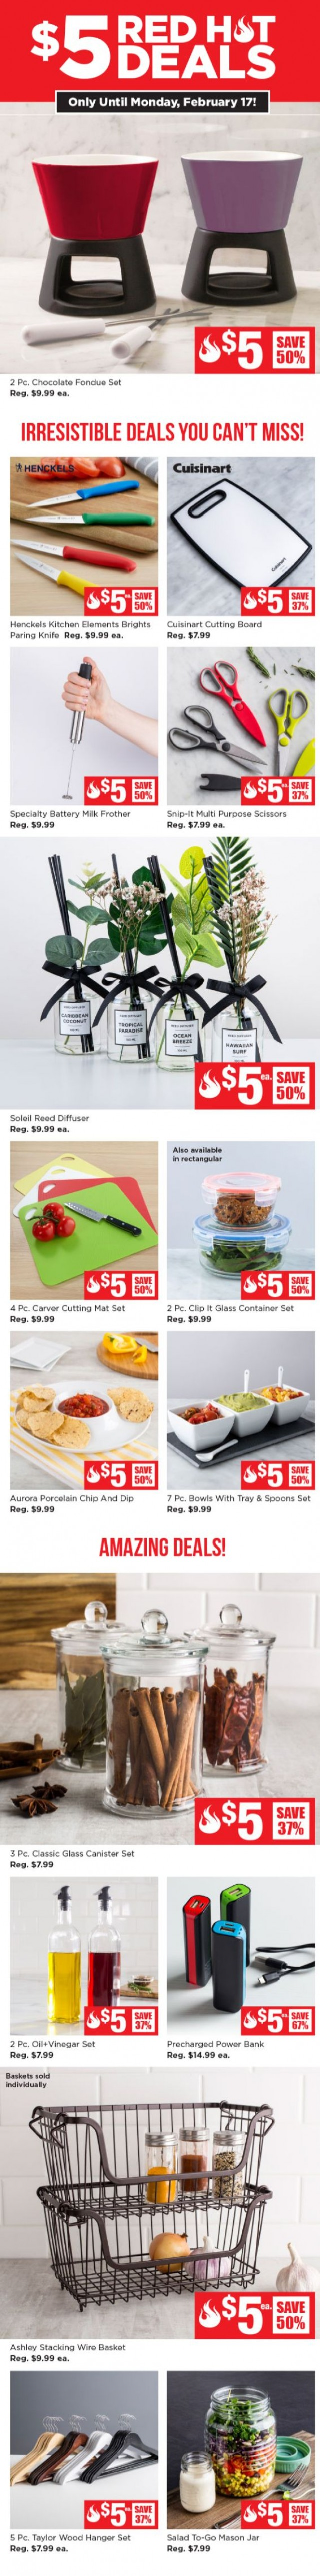 Coupon for: Kitchen Stuff Plus - $5 Red Hot Deals